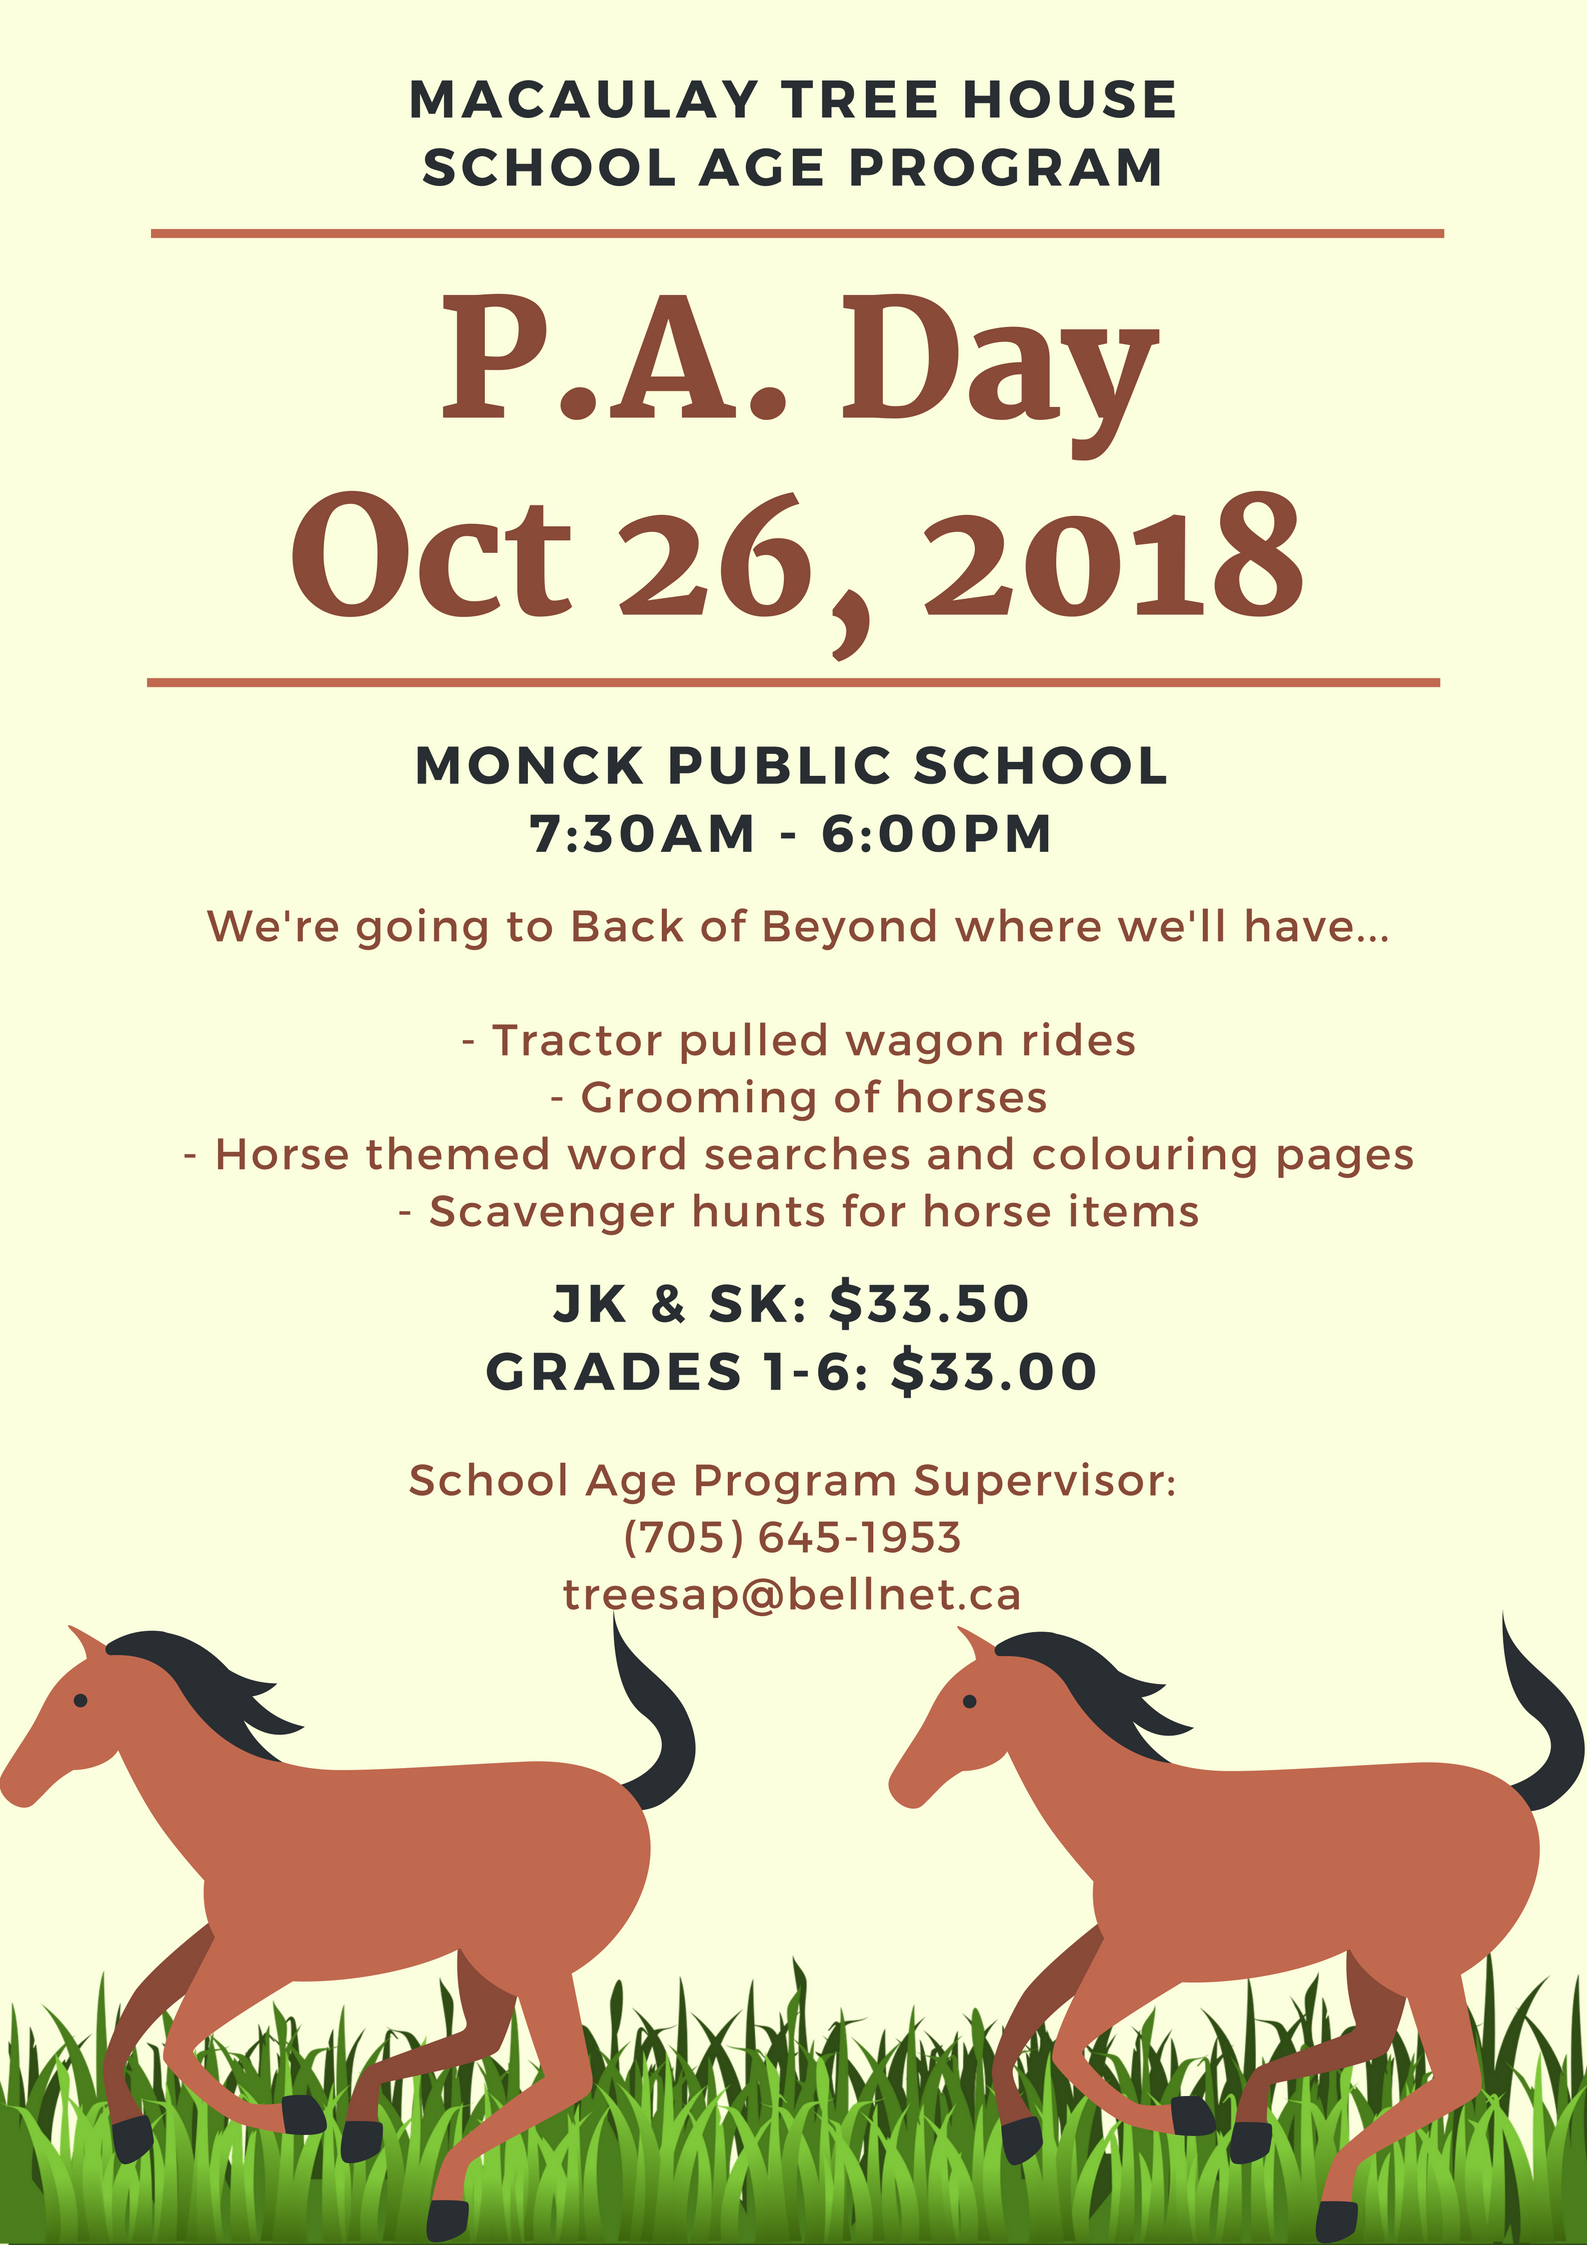 P.A. Day: October 26, 2018